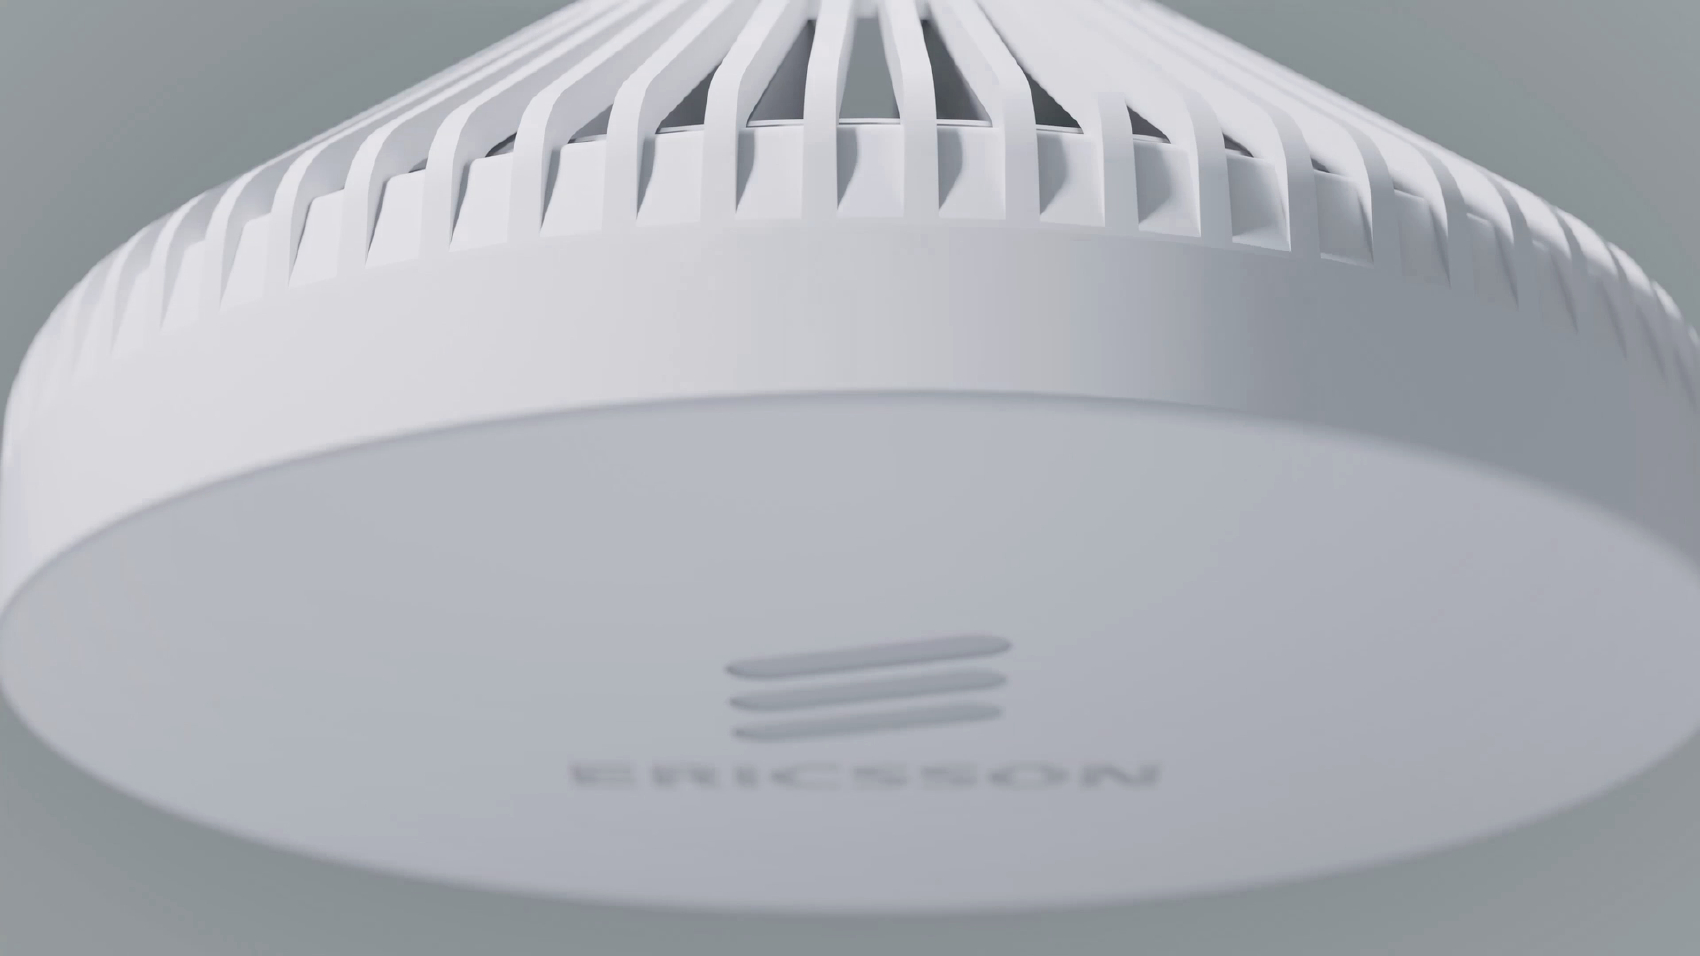 art direction and animation by javier bianchi for ericsson